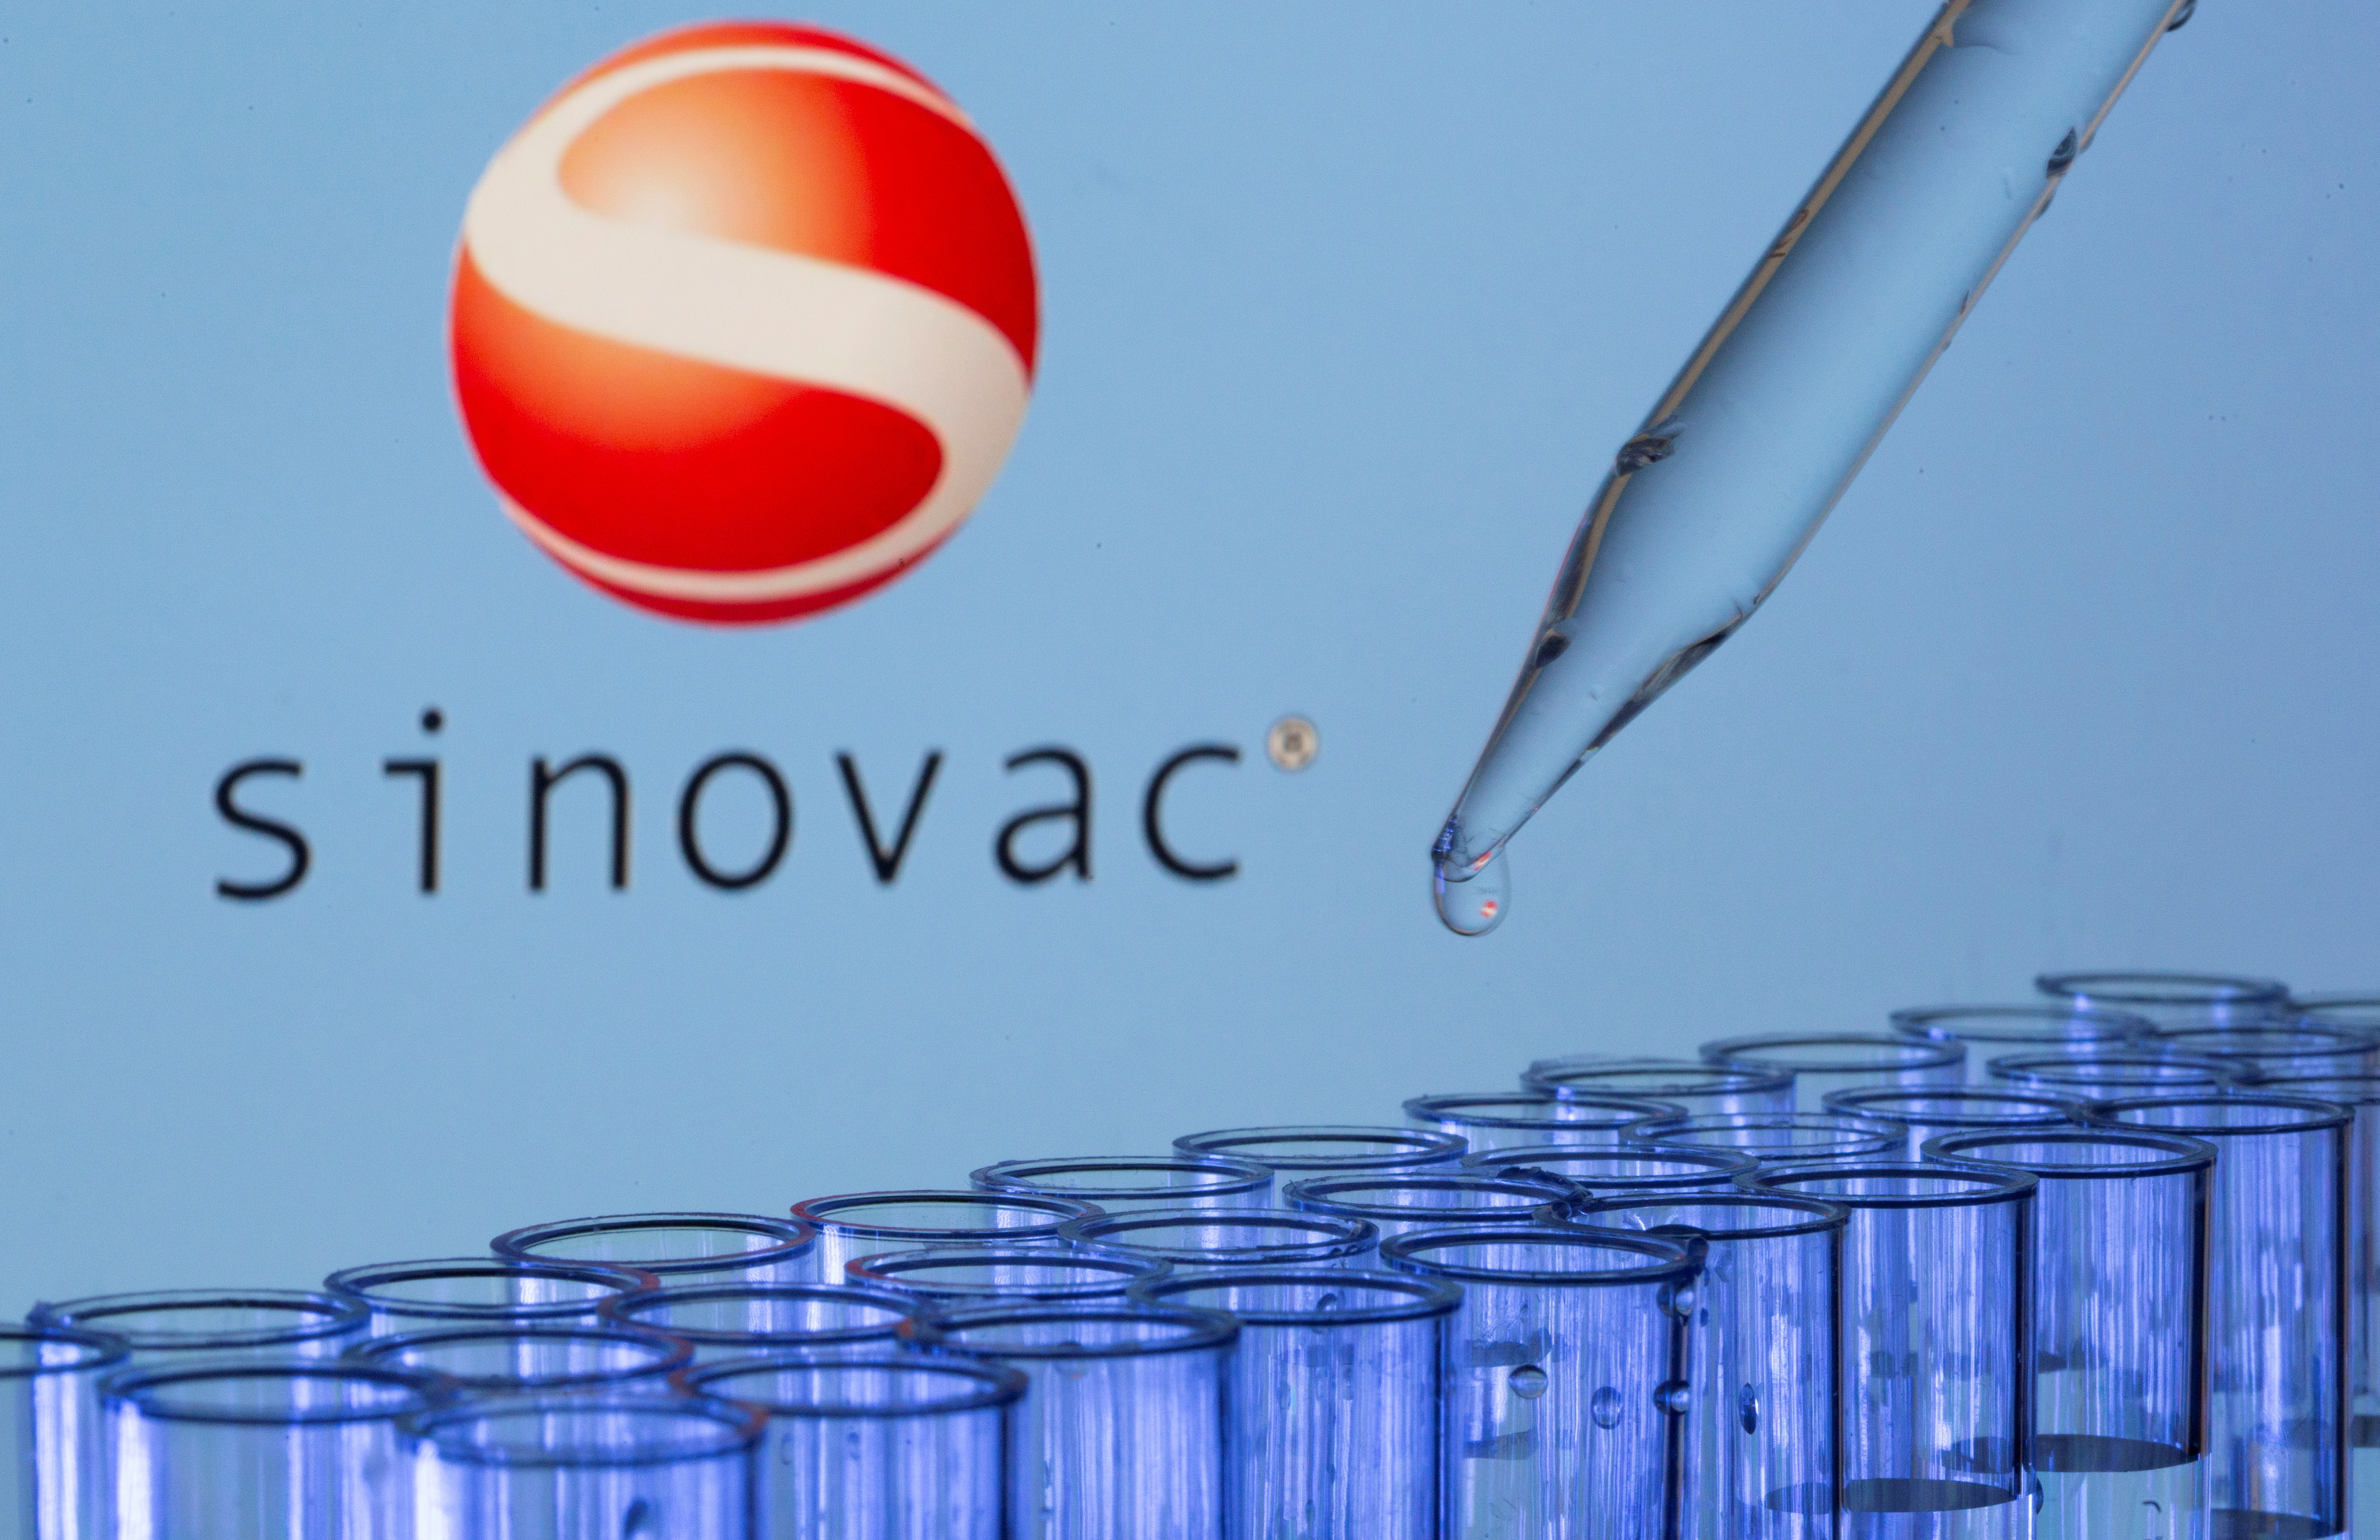 Test tubes are seen in front of a displayed Sinovac logo in this illustration taken, May 21, 2021. REUTERS/Dado Ruvic/Illustration/File Photo